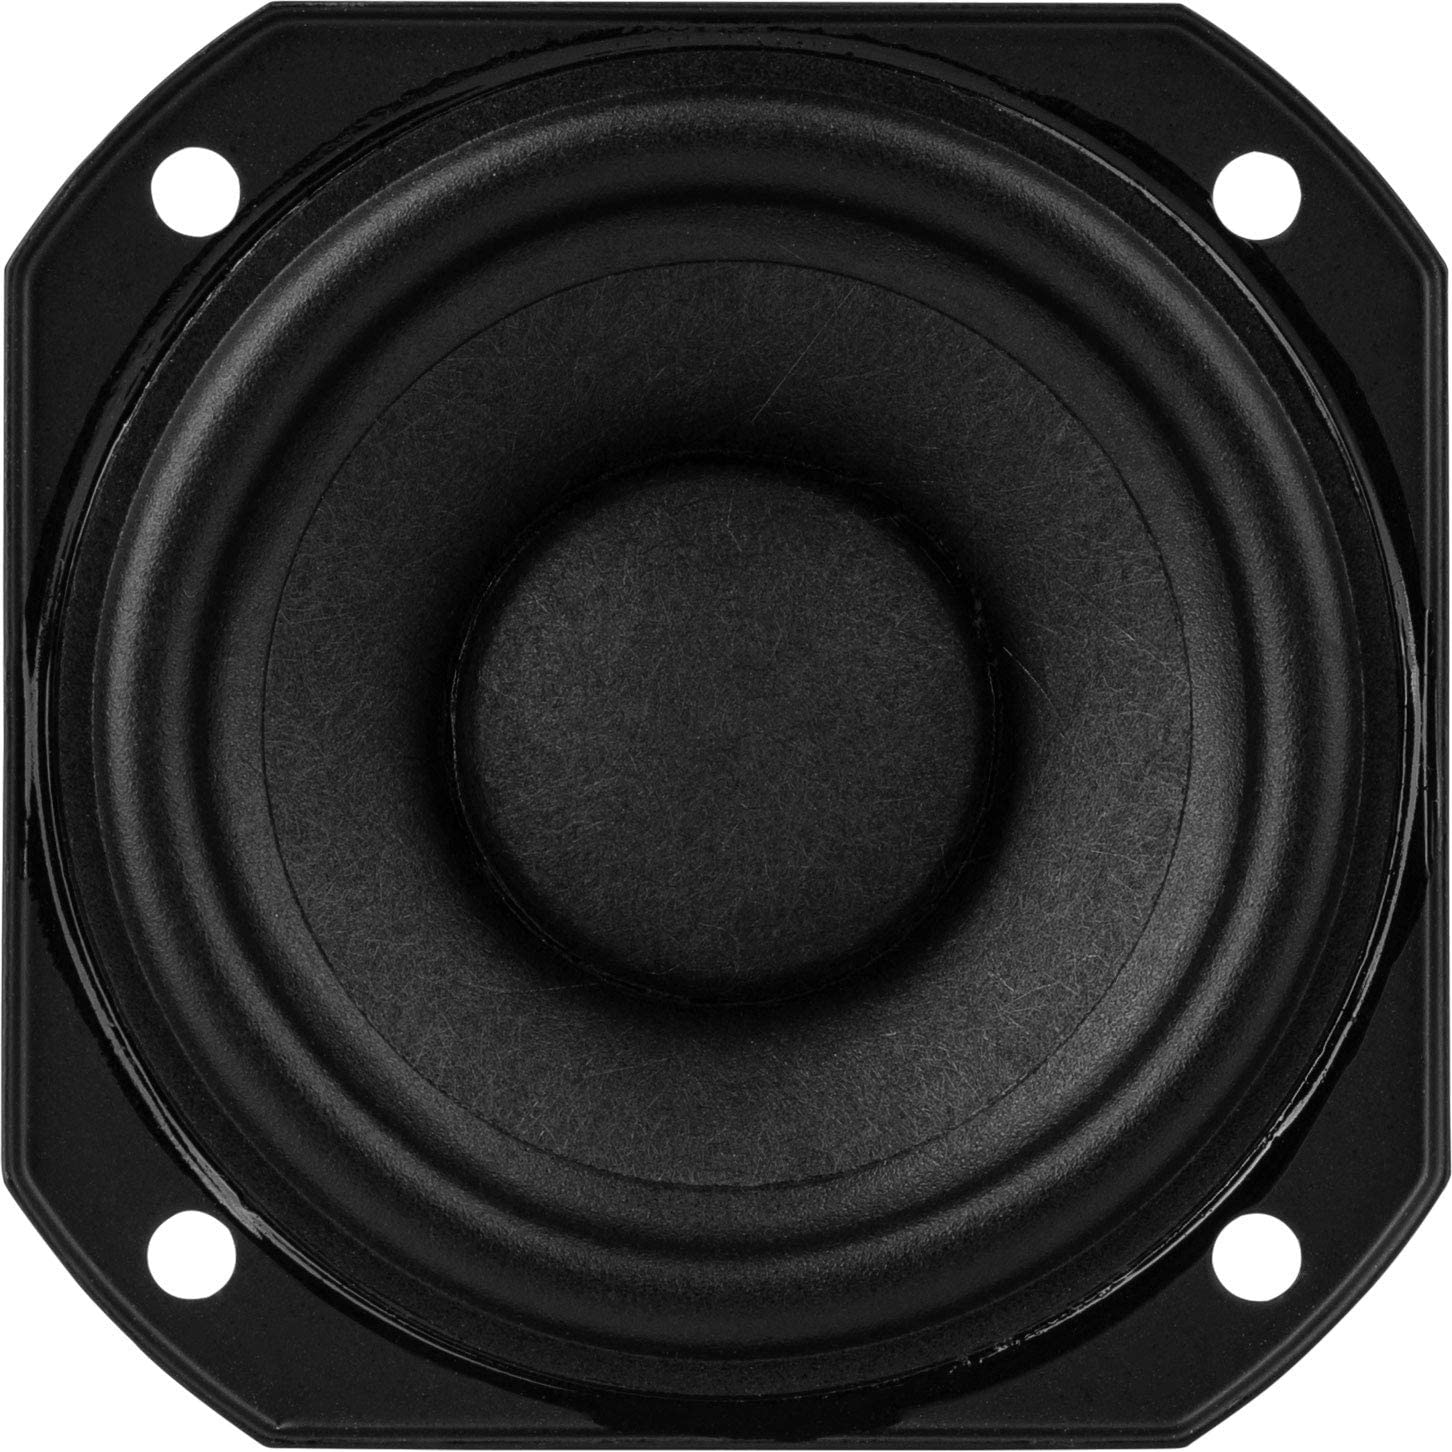 Peerless by Tymphany TC6FD00-04 2 Full Range Paper Cone Woofer 4 Ohm